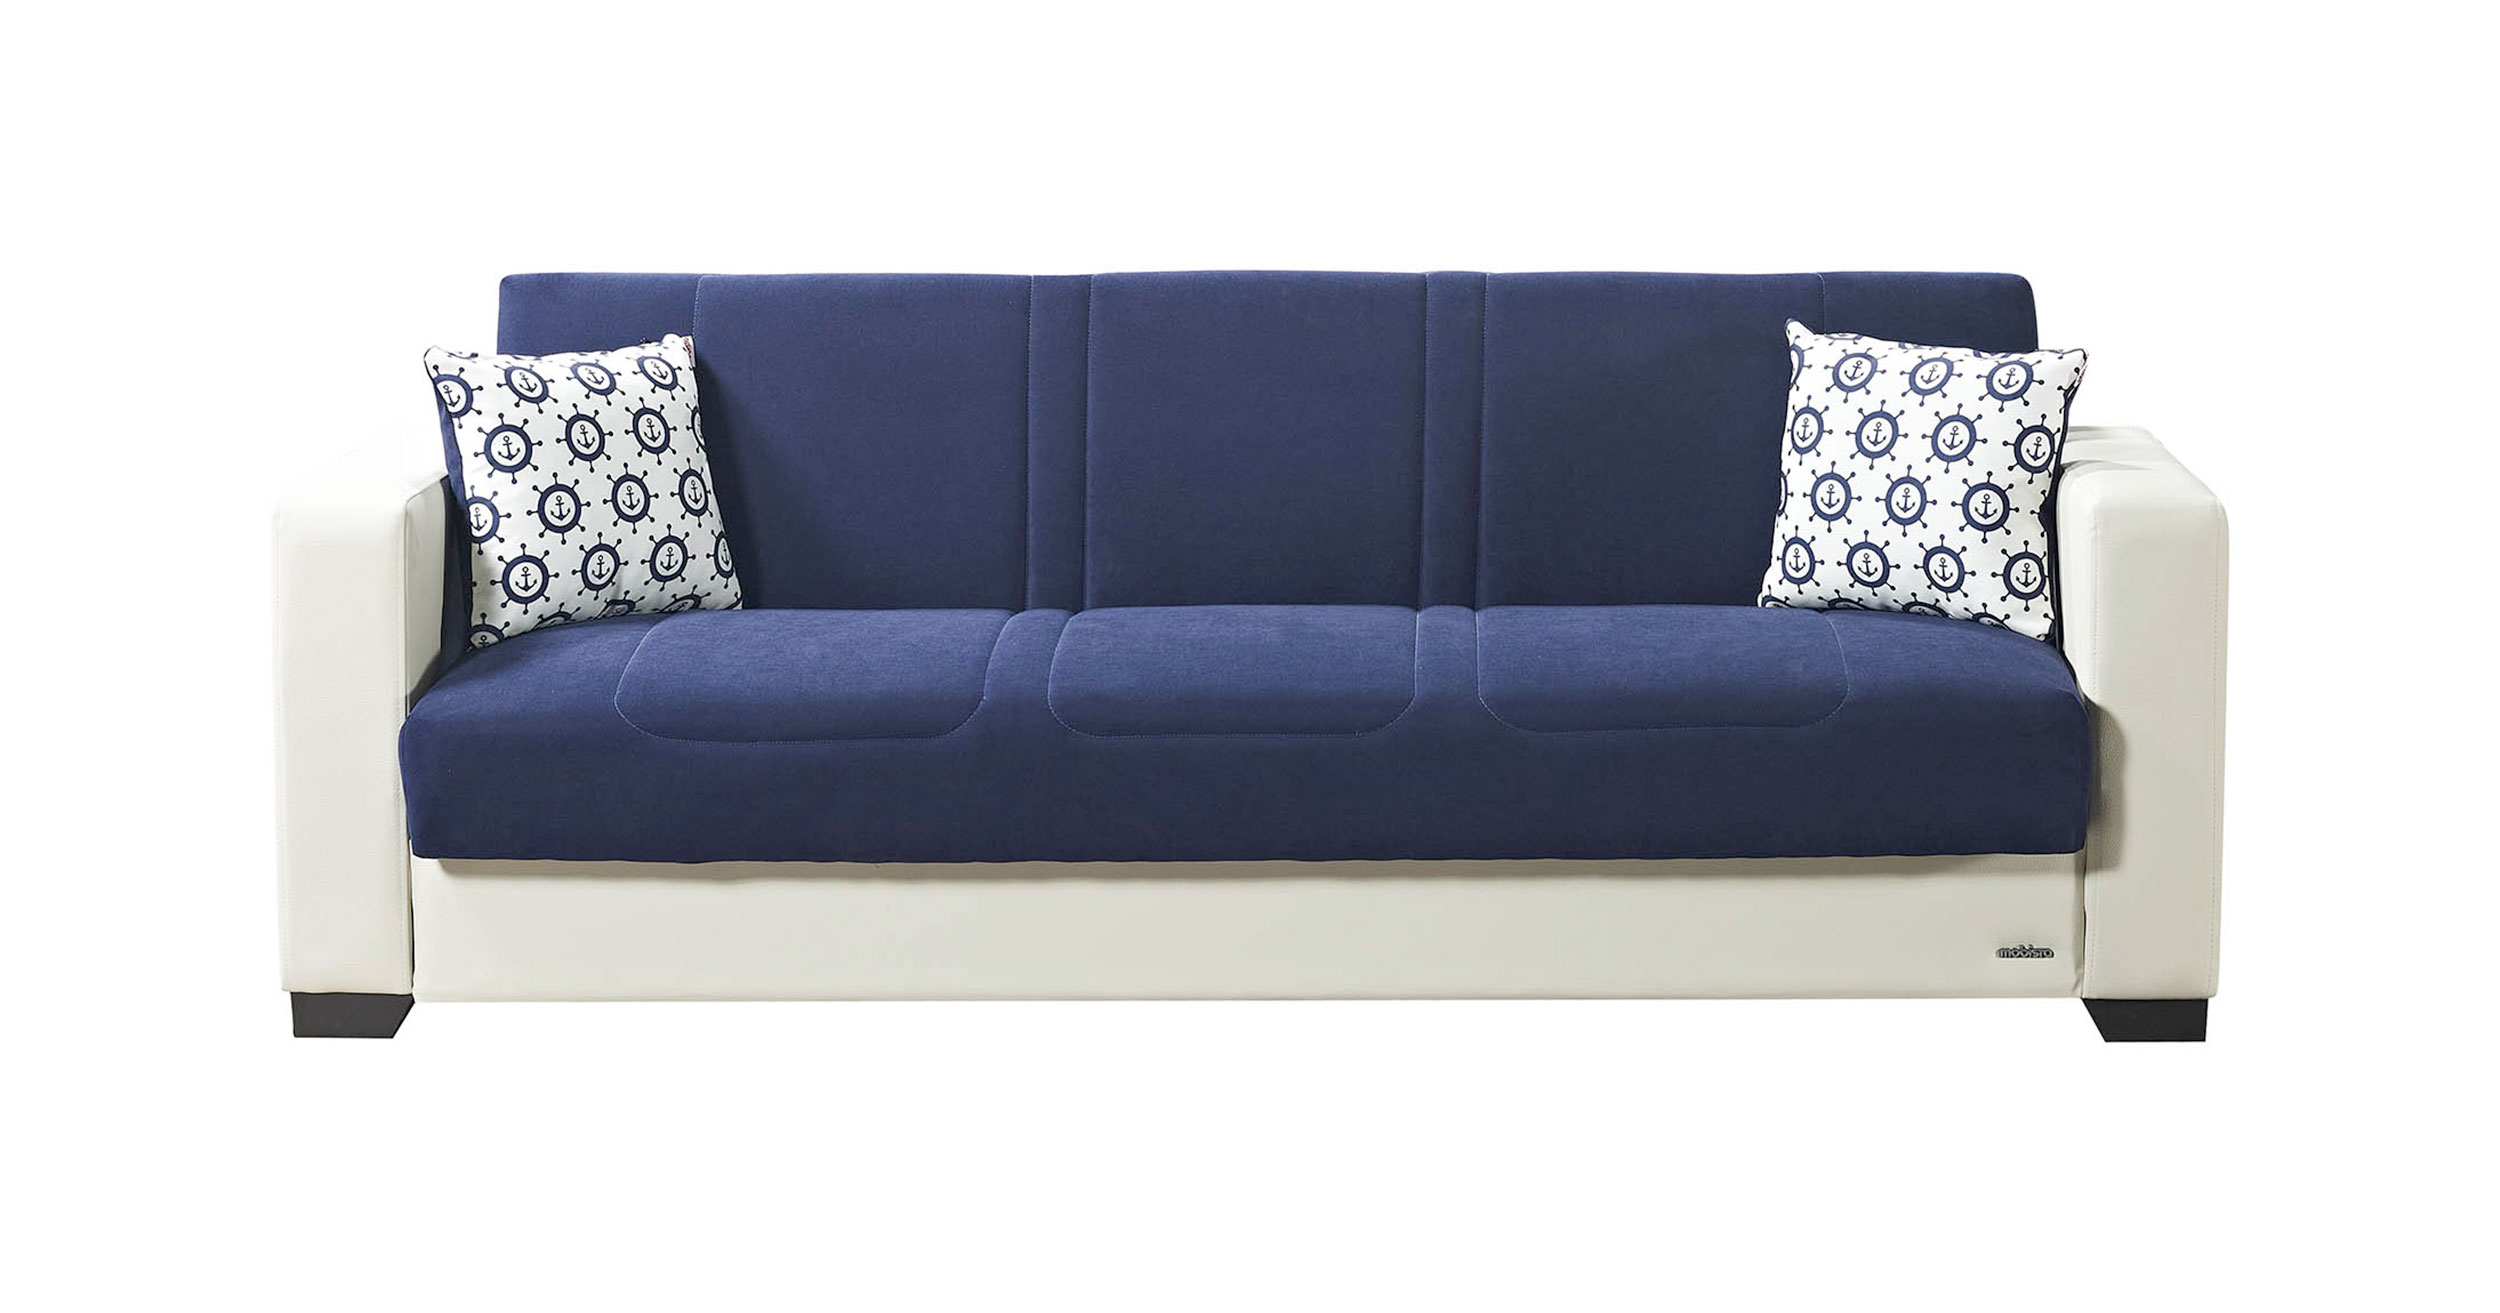 Groovy Relaxon Carisma Navy Blue Sofa Bed By Mobista Ncnpc Chair Design For Home Ncnpcorg